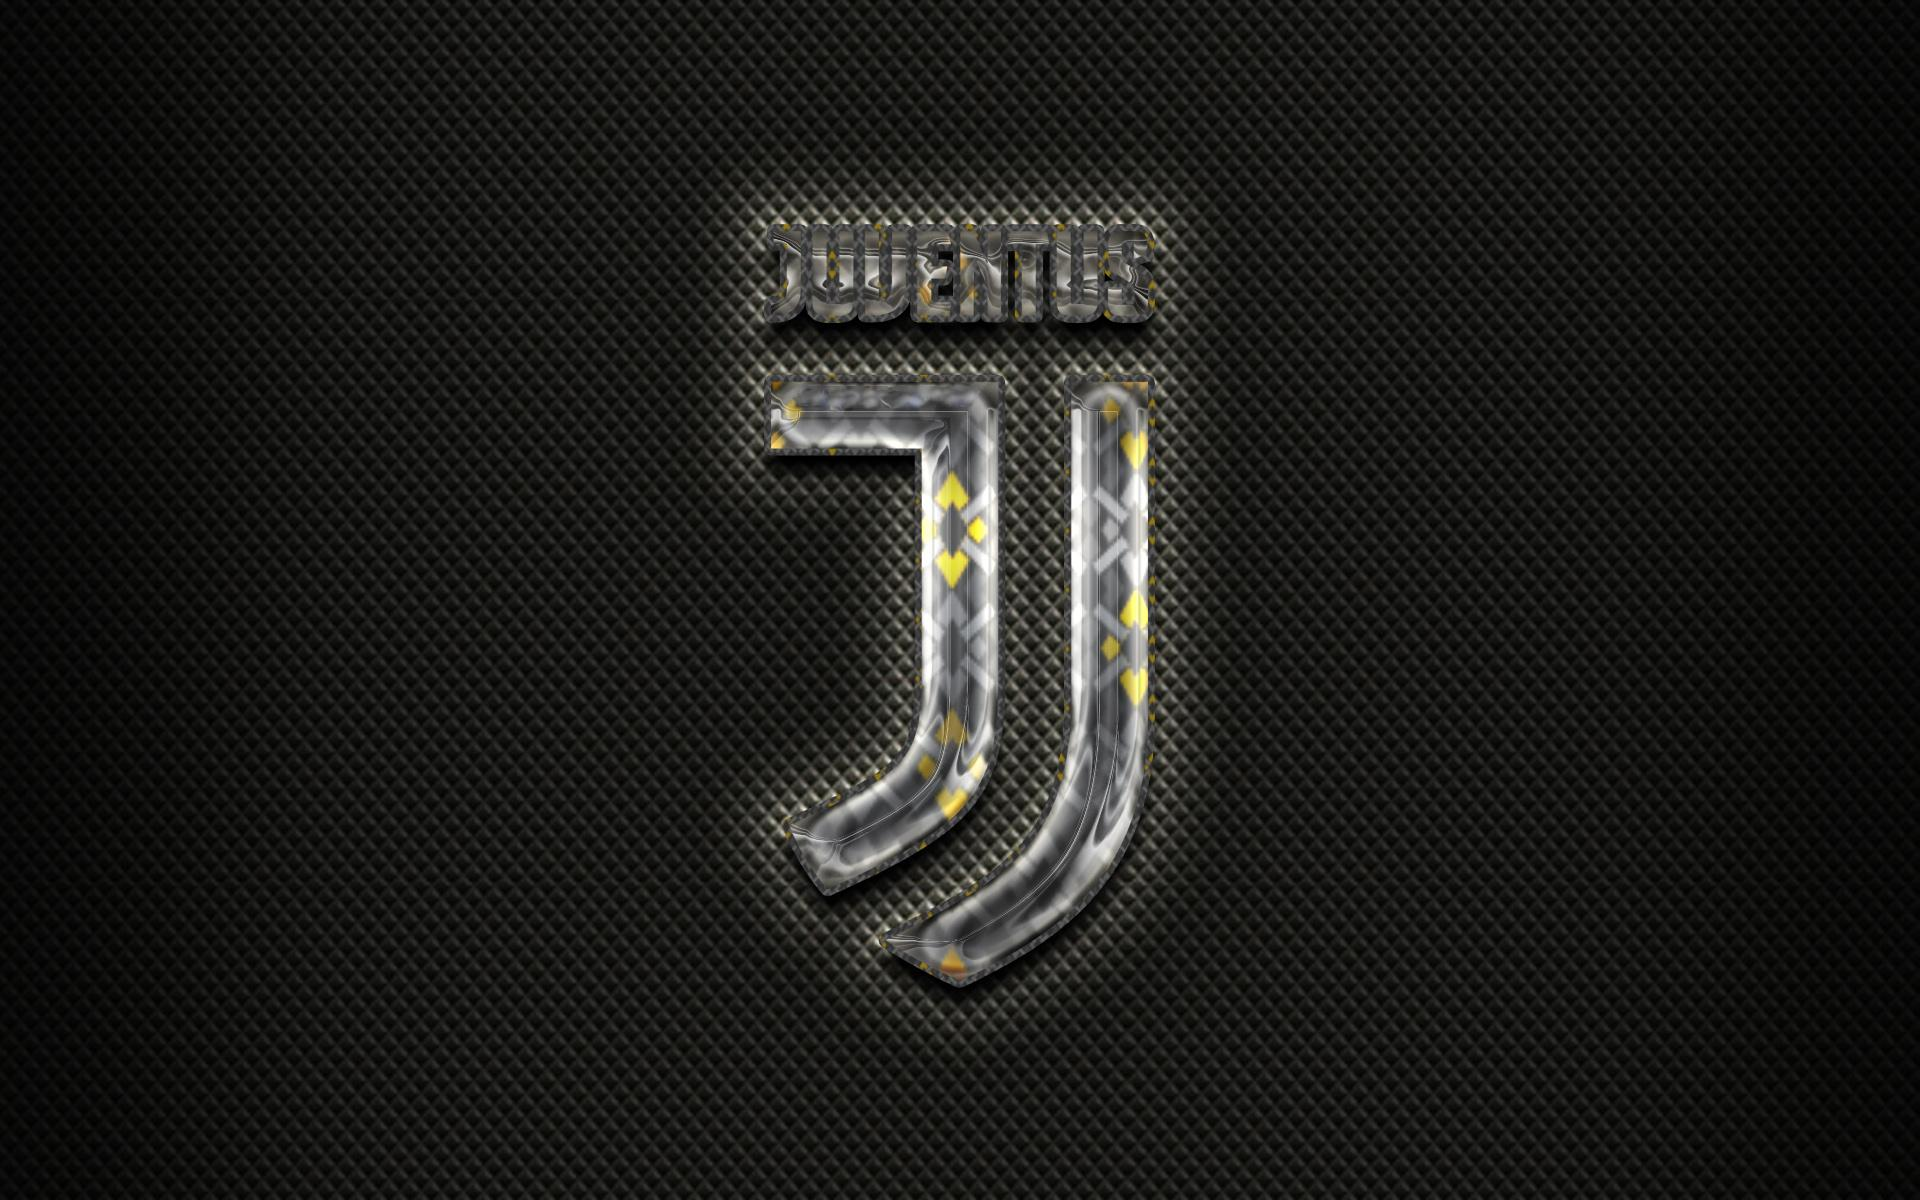 Juventus 2019 Wallpapers Wallpaper Cave